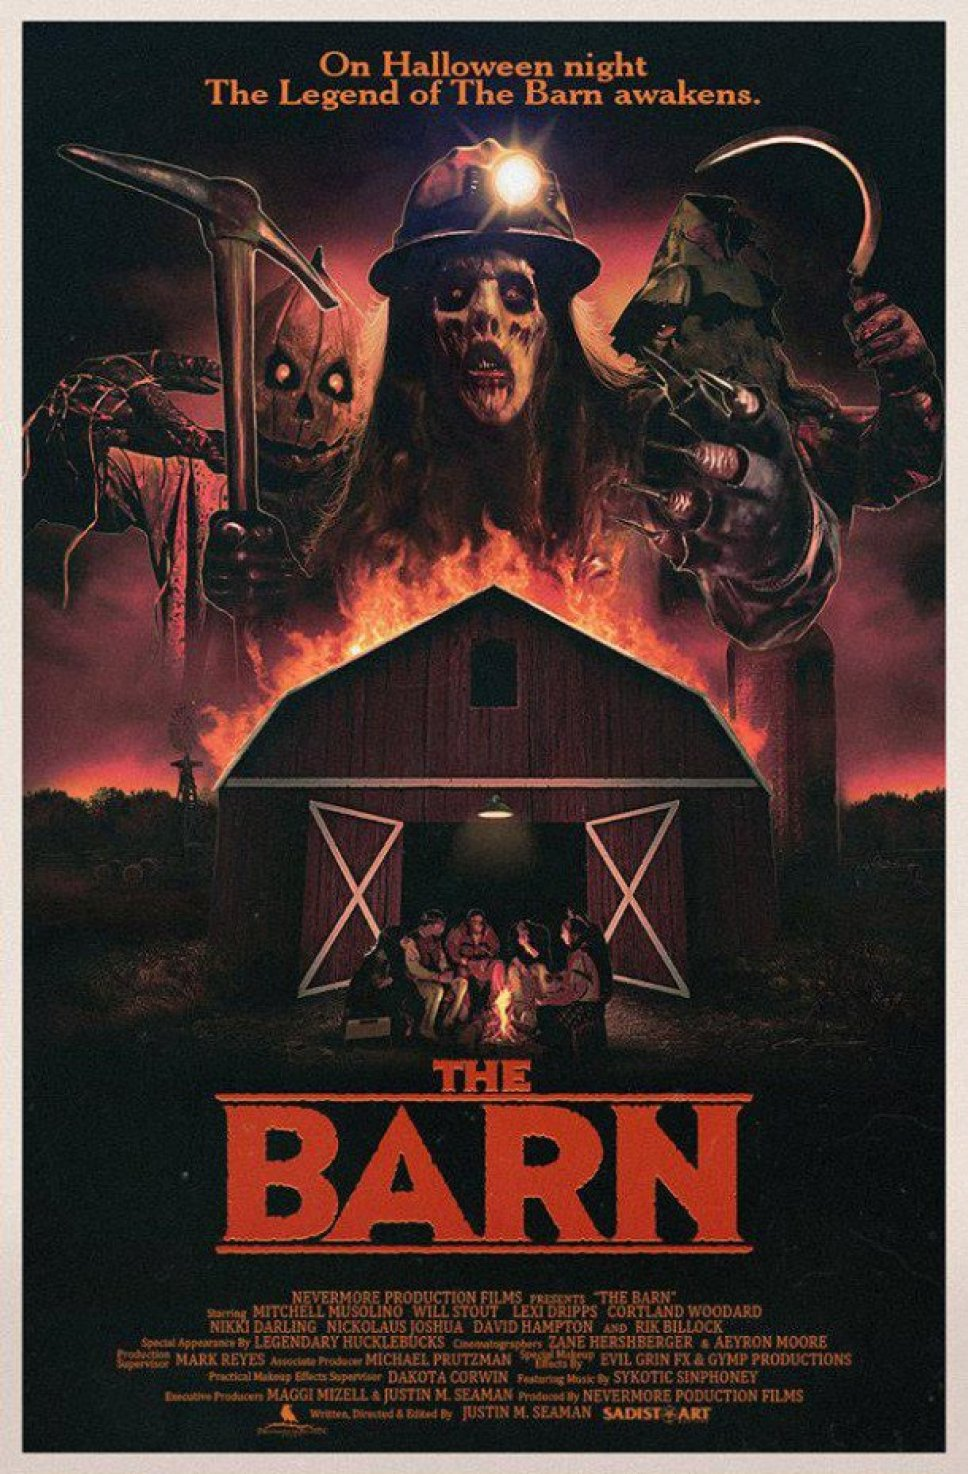 The Barn review